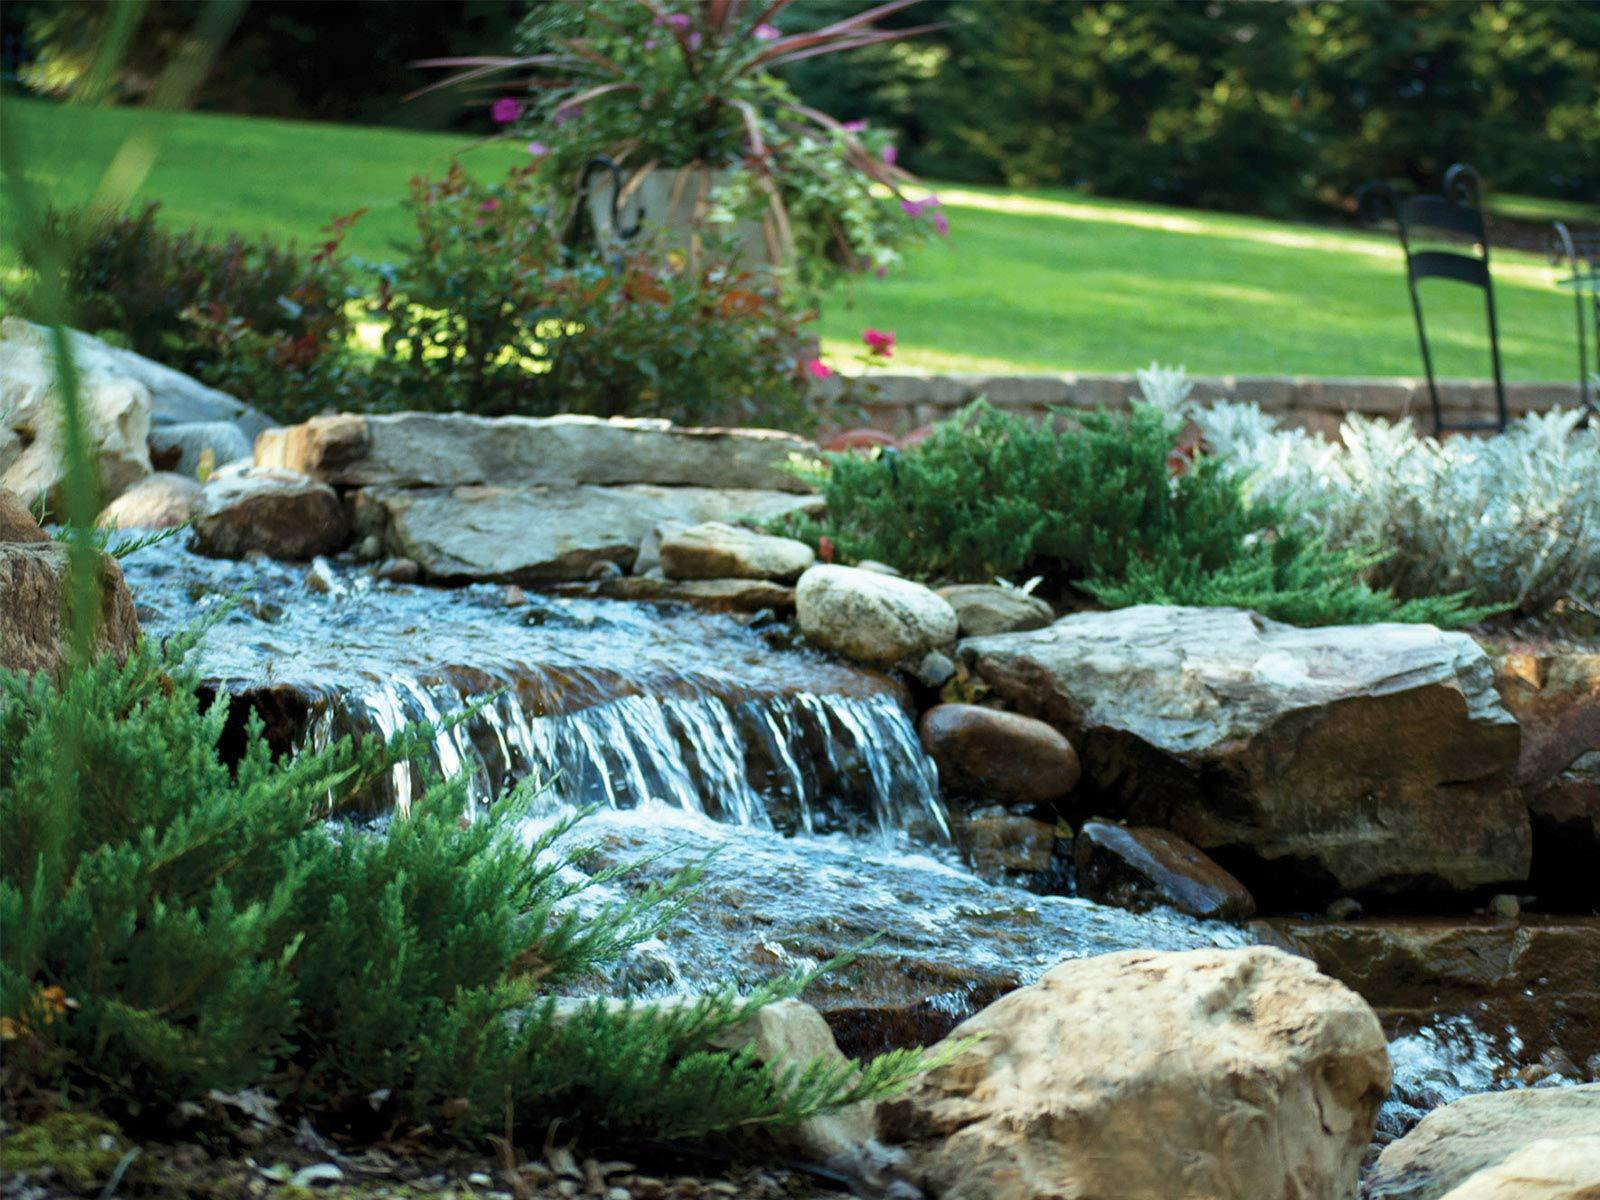 Waterscapes International Pond Filter & Waterfall Spillway